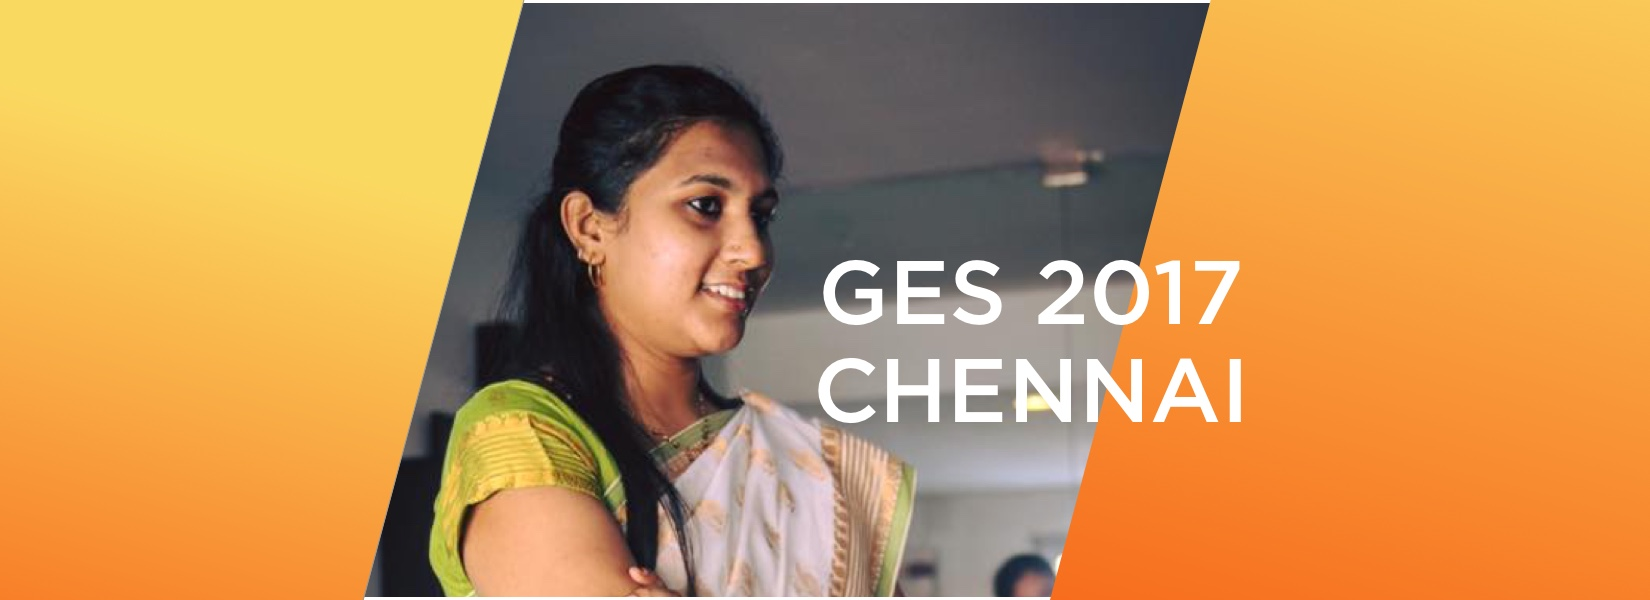 Swaathi Kakarla to be on the panel at GES 2017 in Chennai